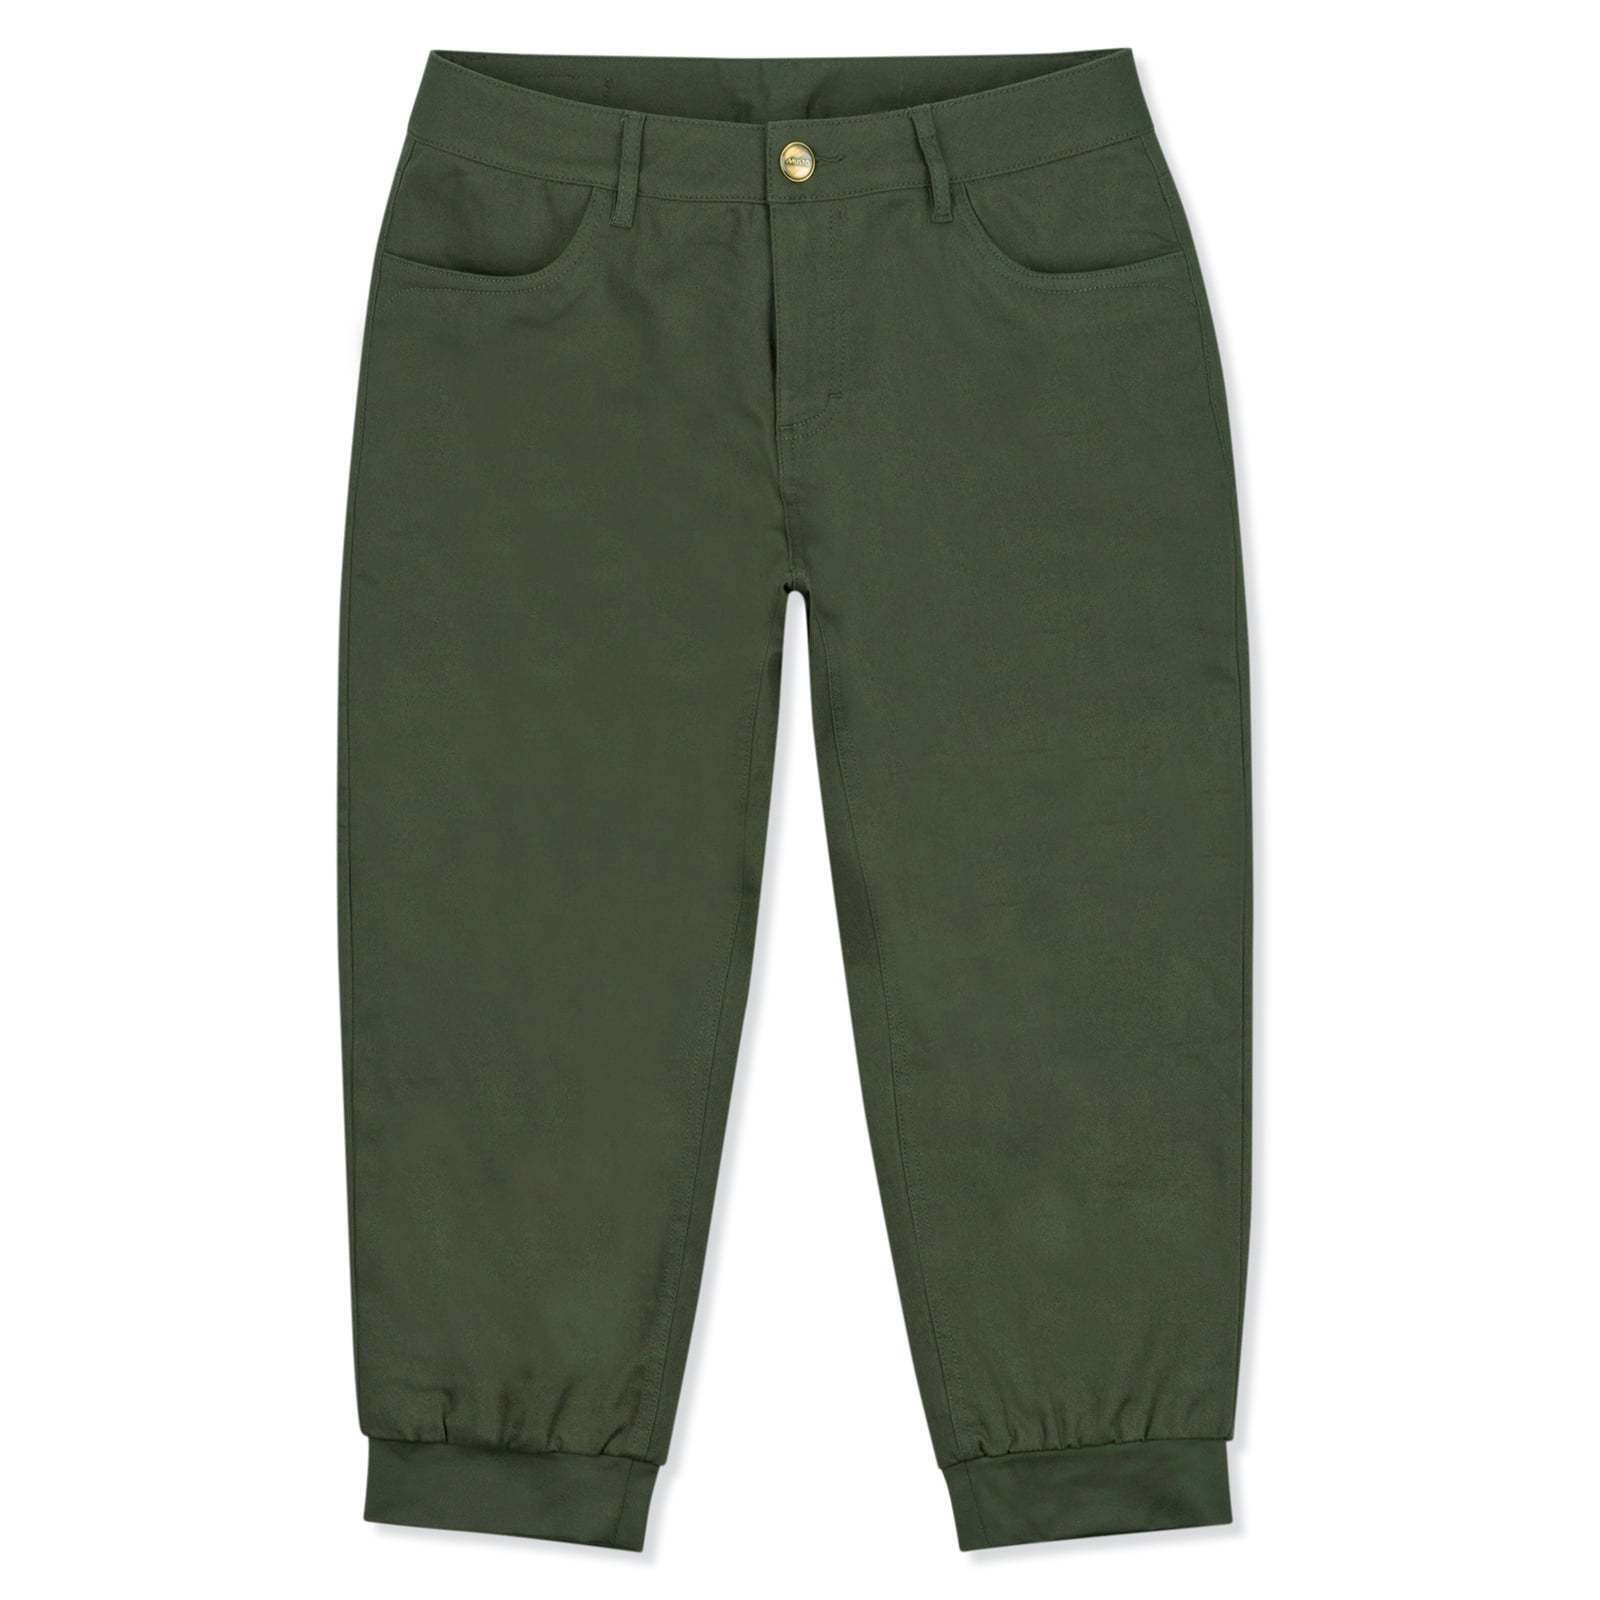 Musto Ladies Sporting BR2 Breeks - Moss Green - Only